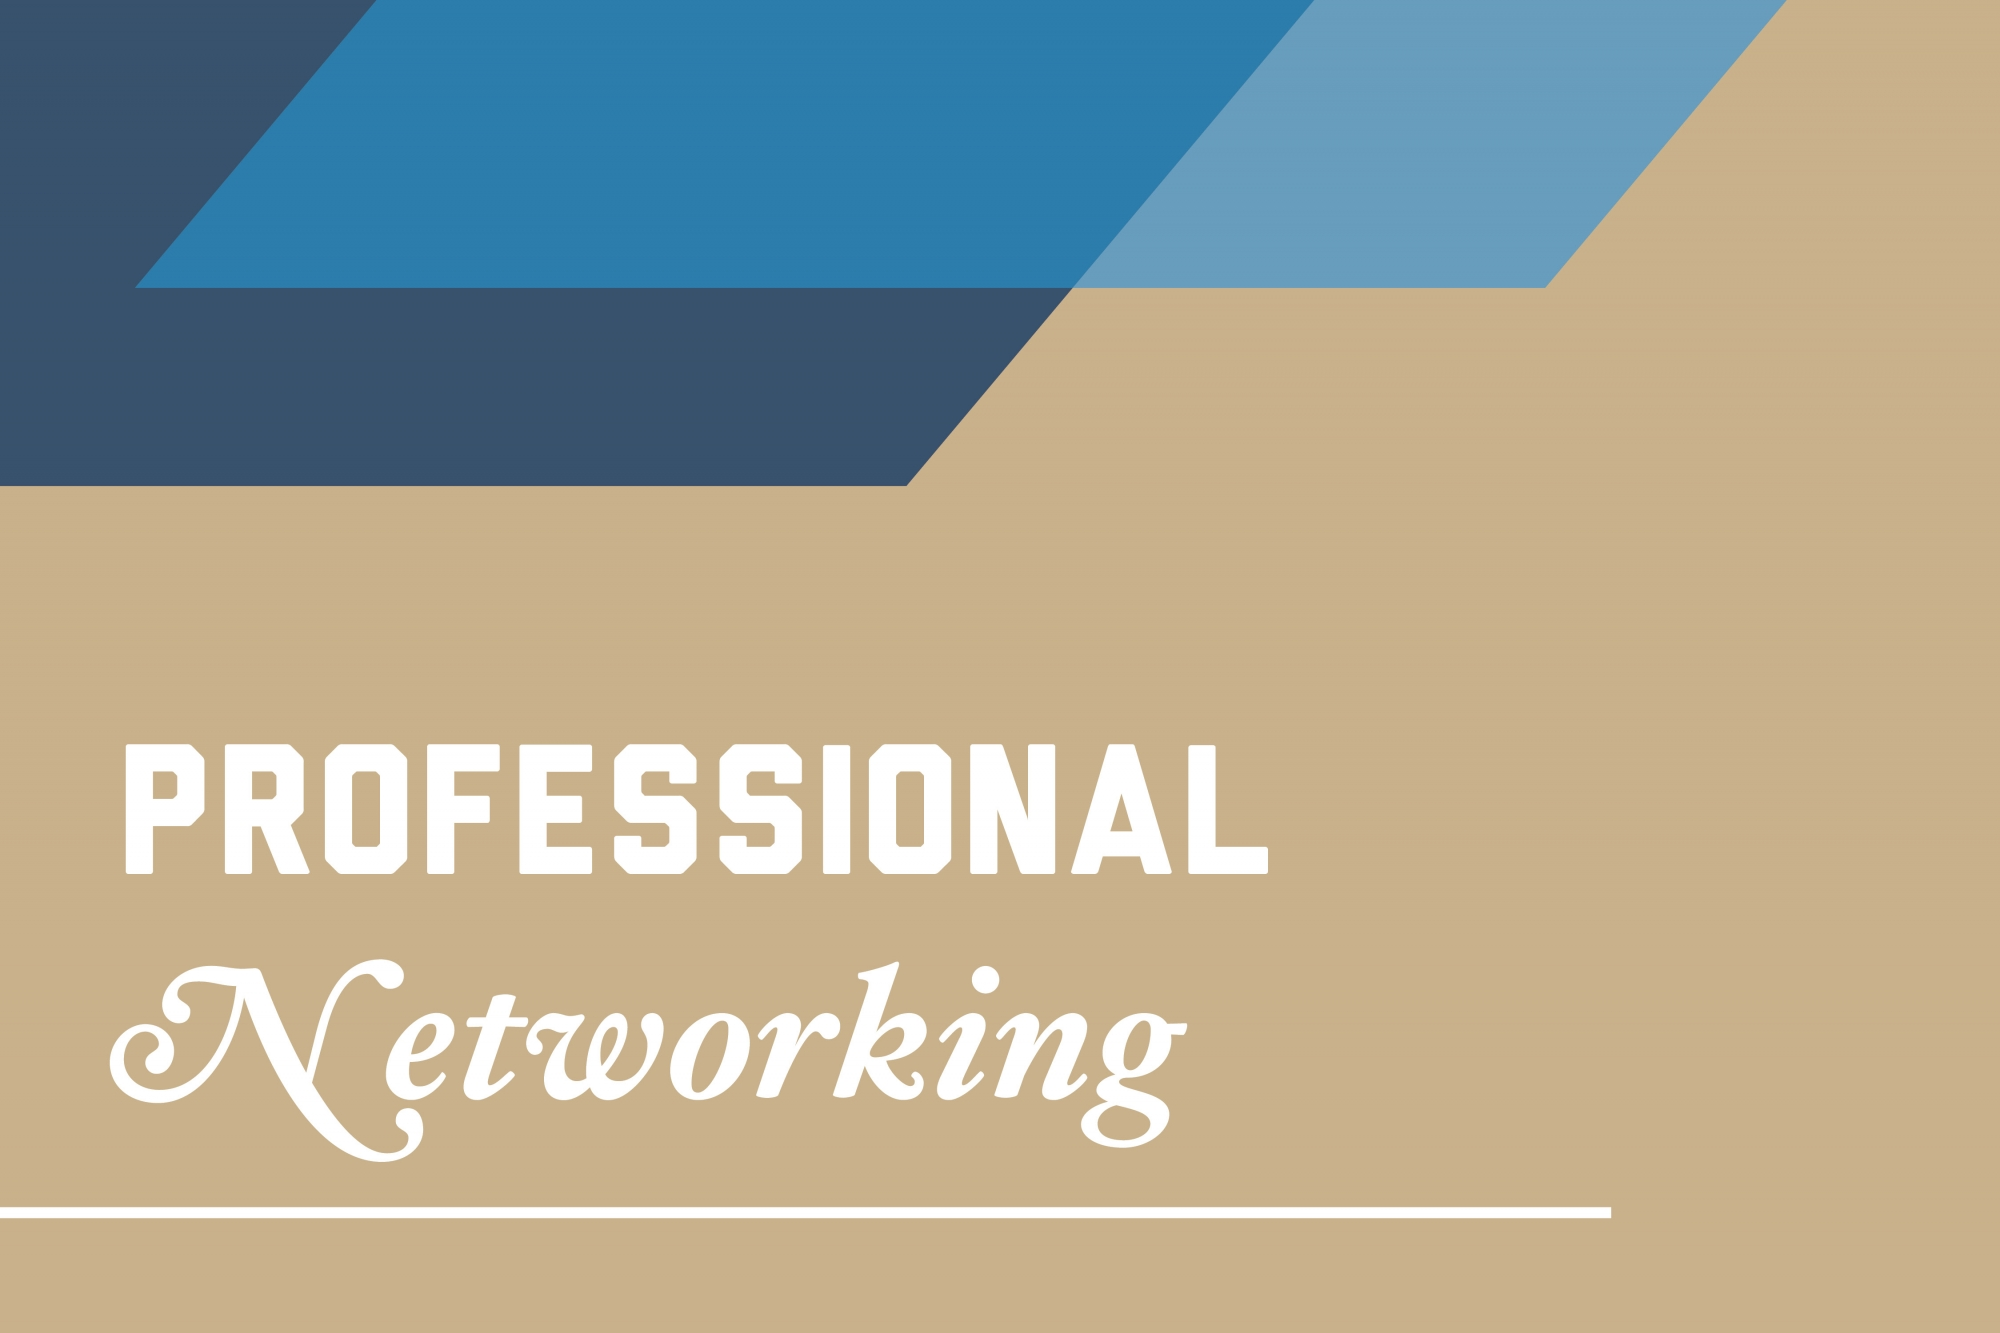 Graphic: Professional networking